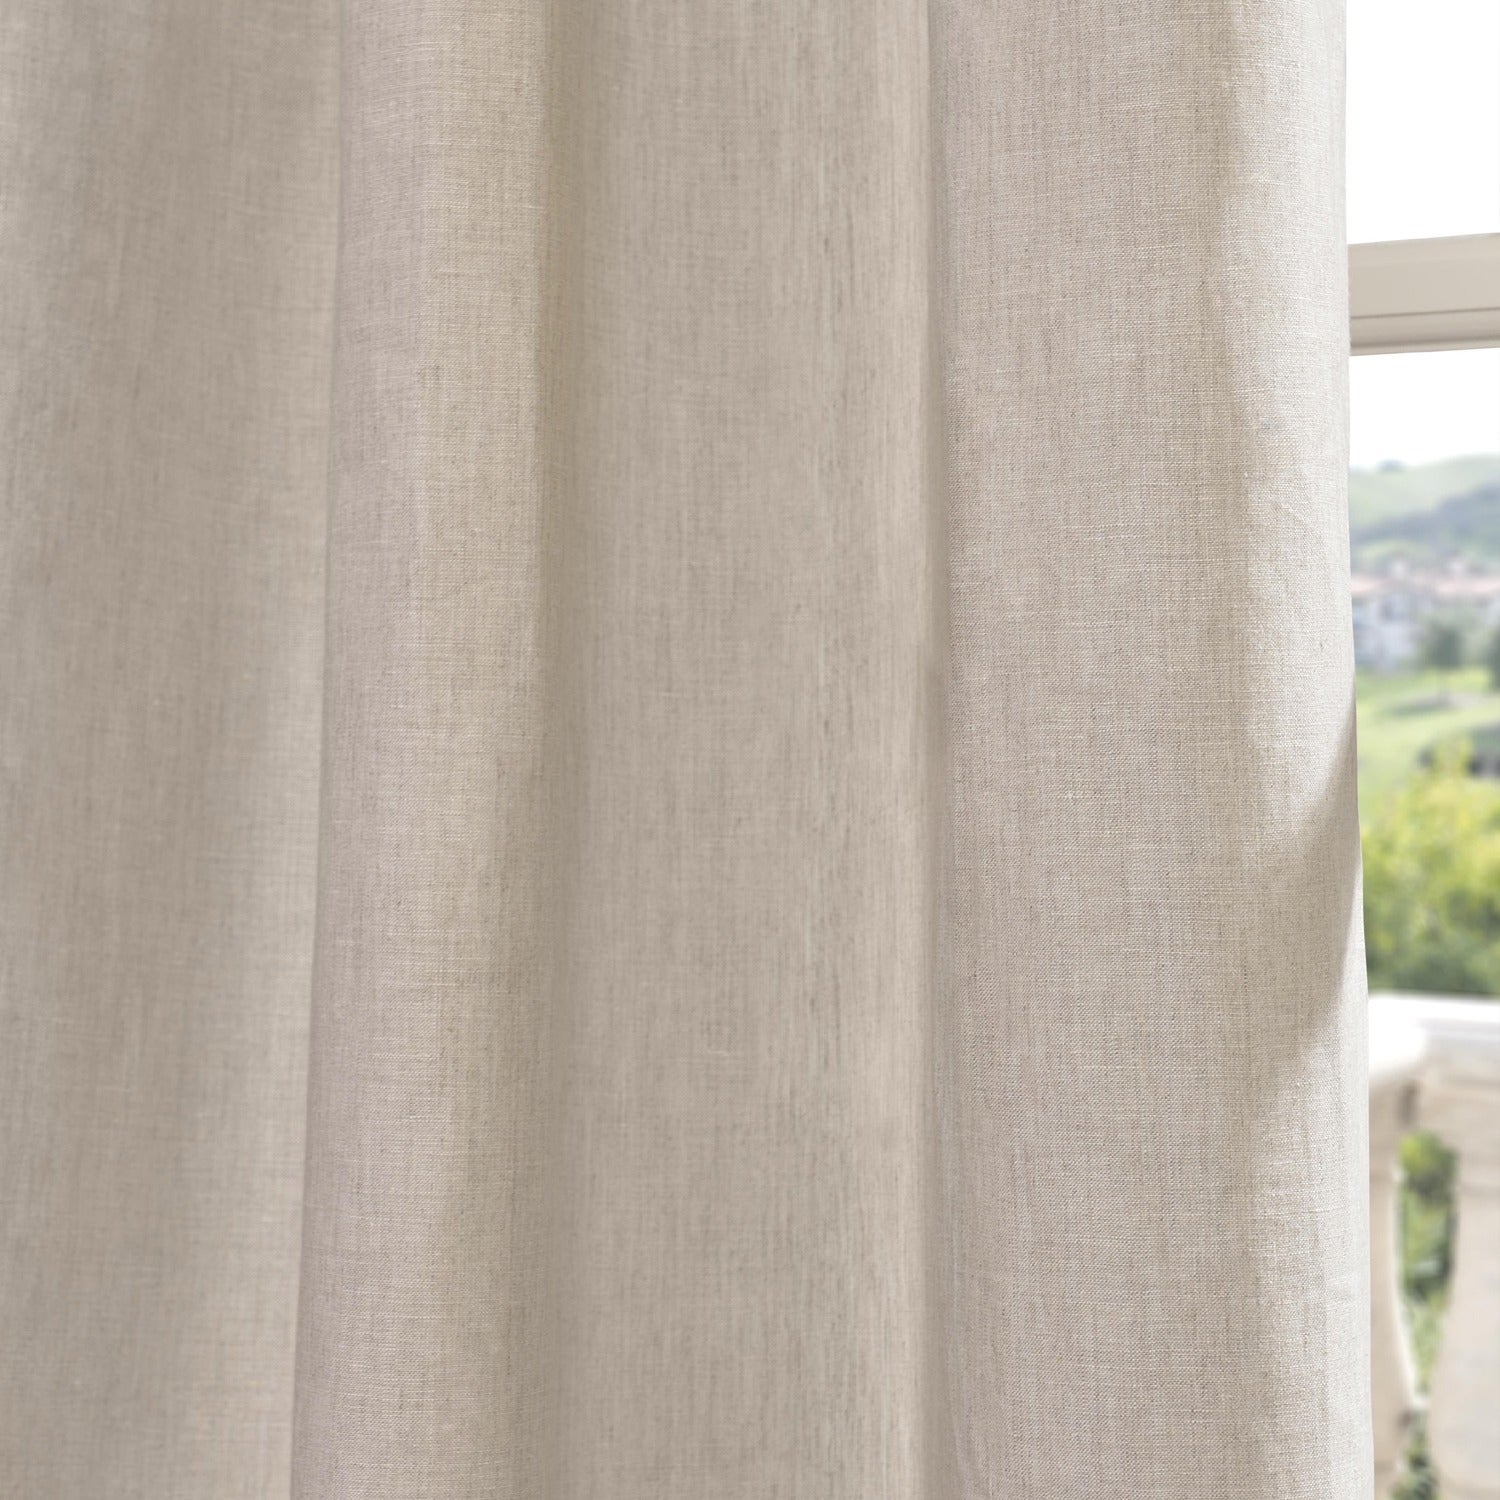 Exclusive Fabrics Signature French Linen Curtain Panel Inside Signature French Linen Curtain Panels (View 16 of 30)